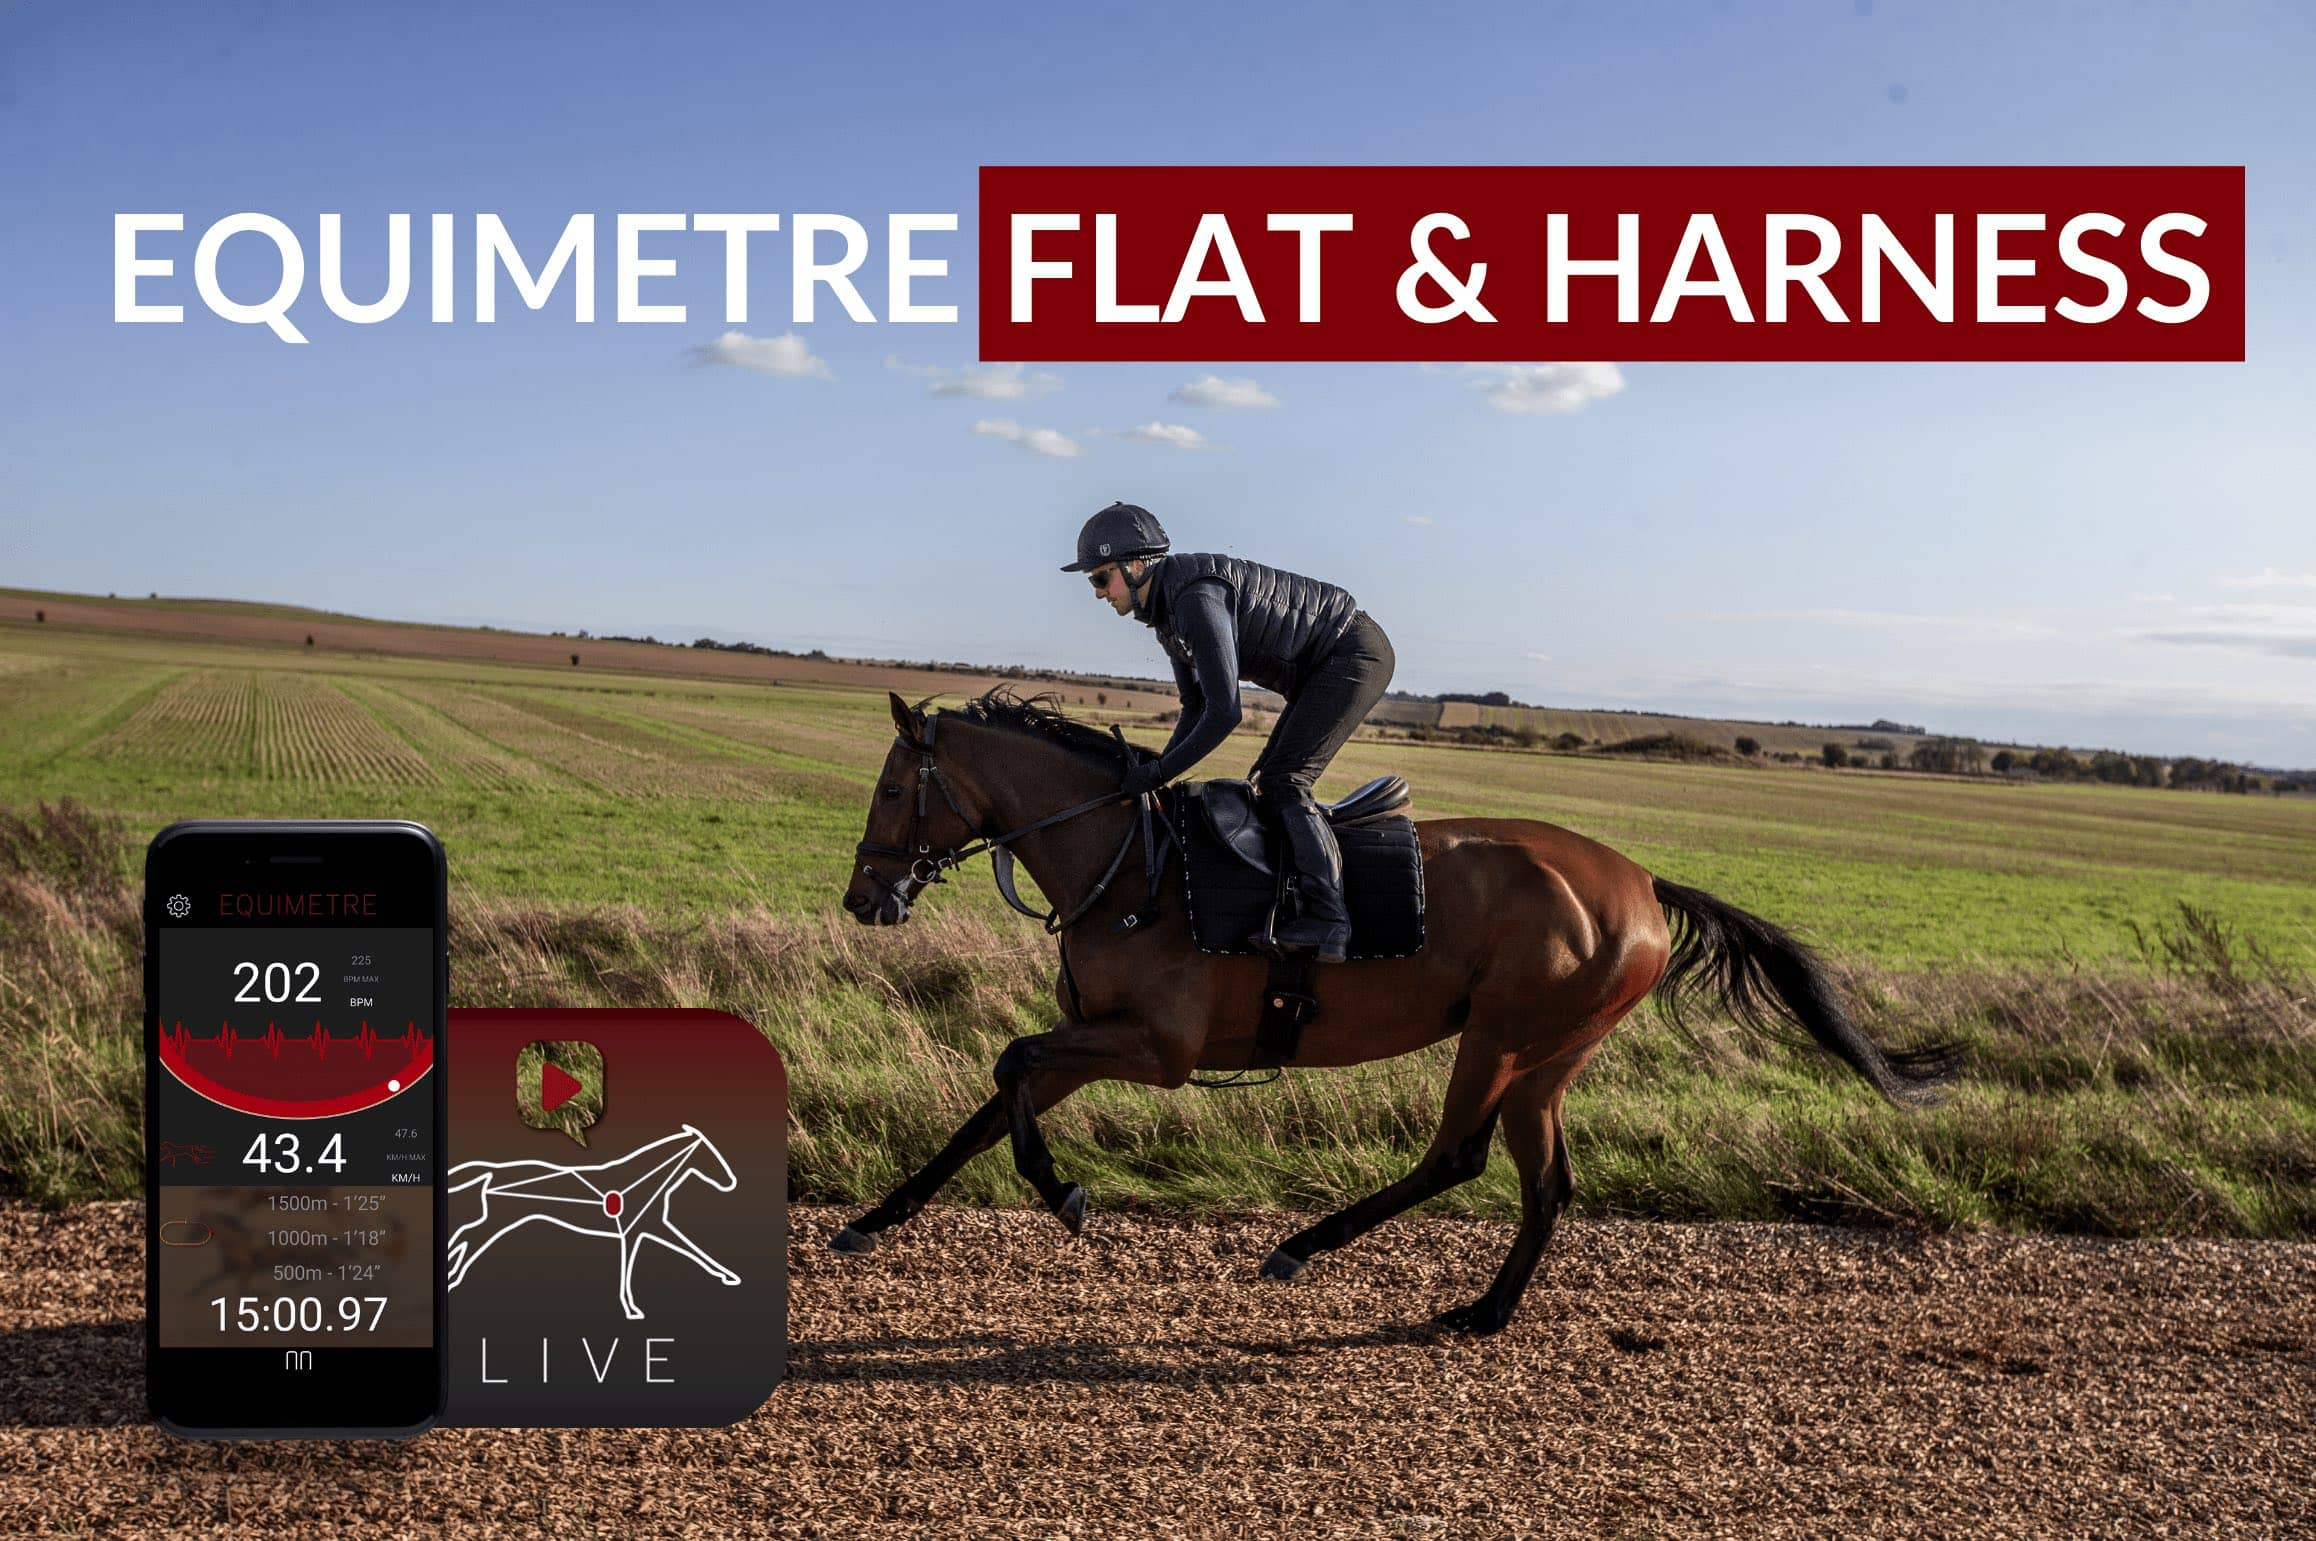 equimetre flat & harness for racehorses